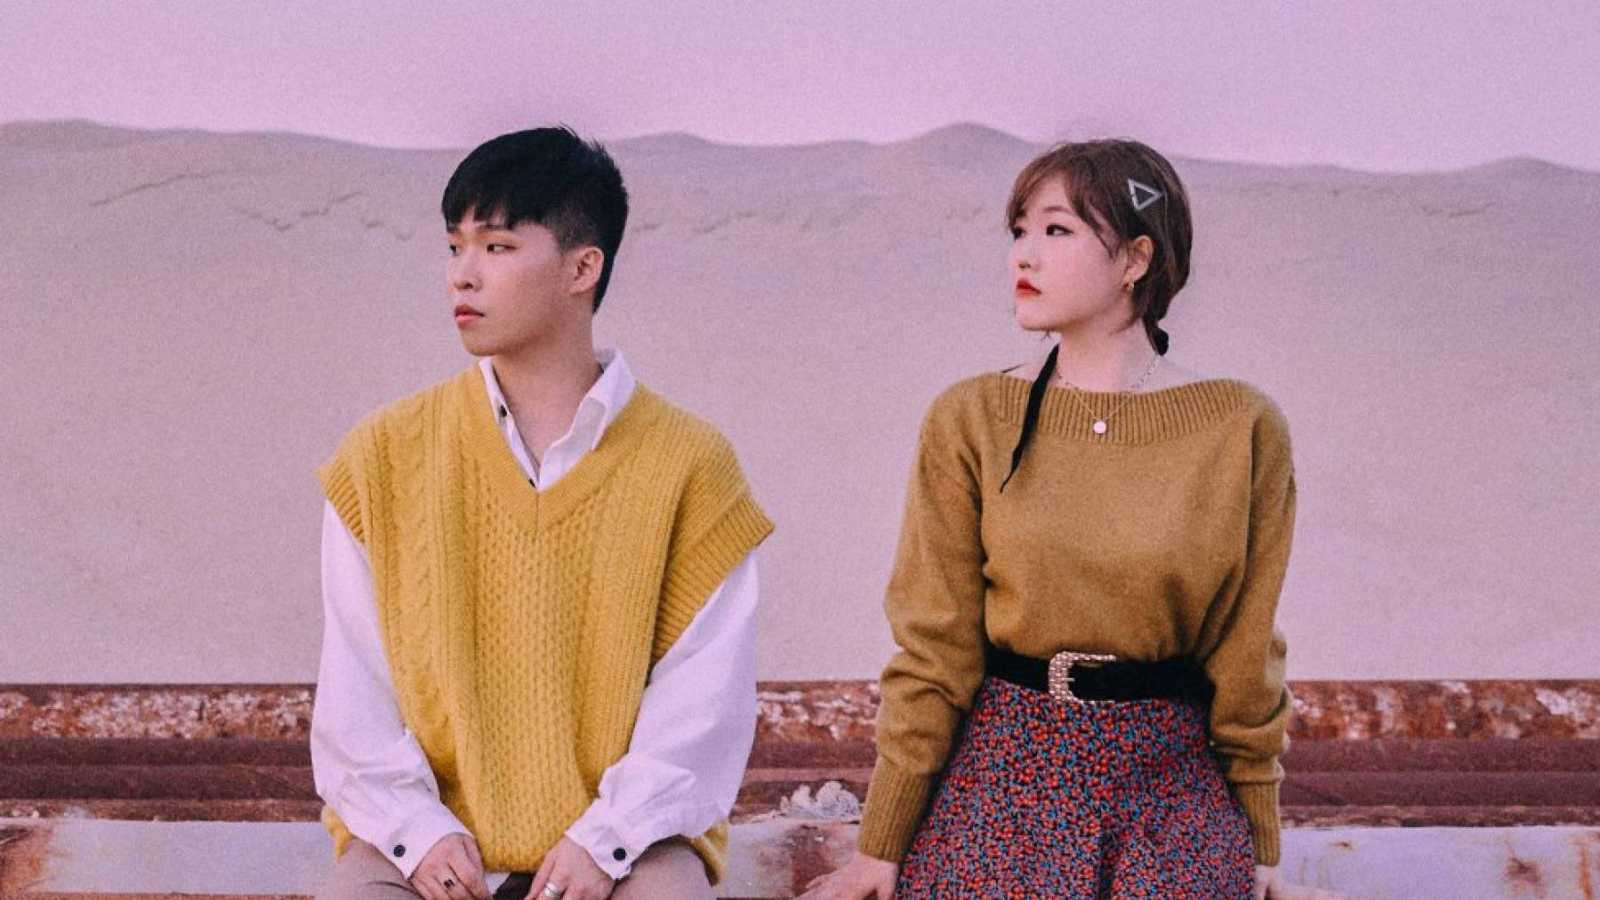 Akdong Musician © YG Entertainment. All rights reserved